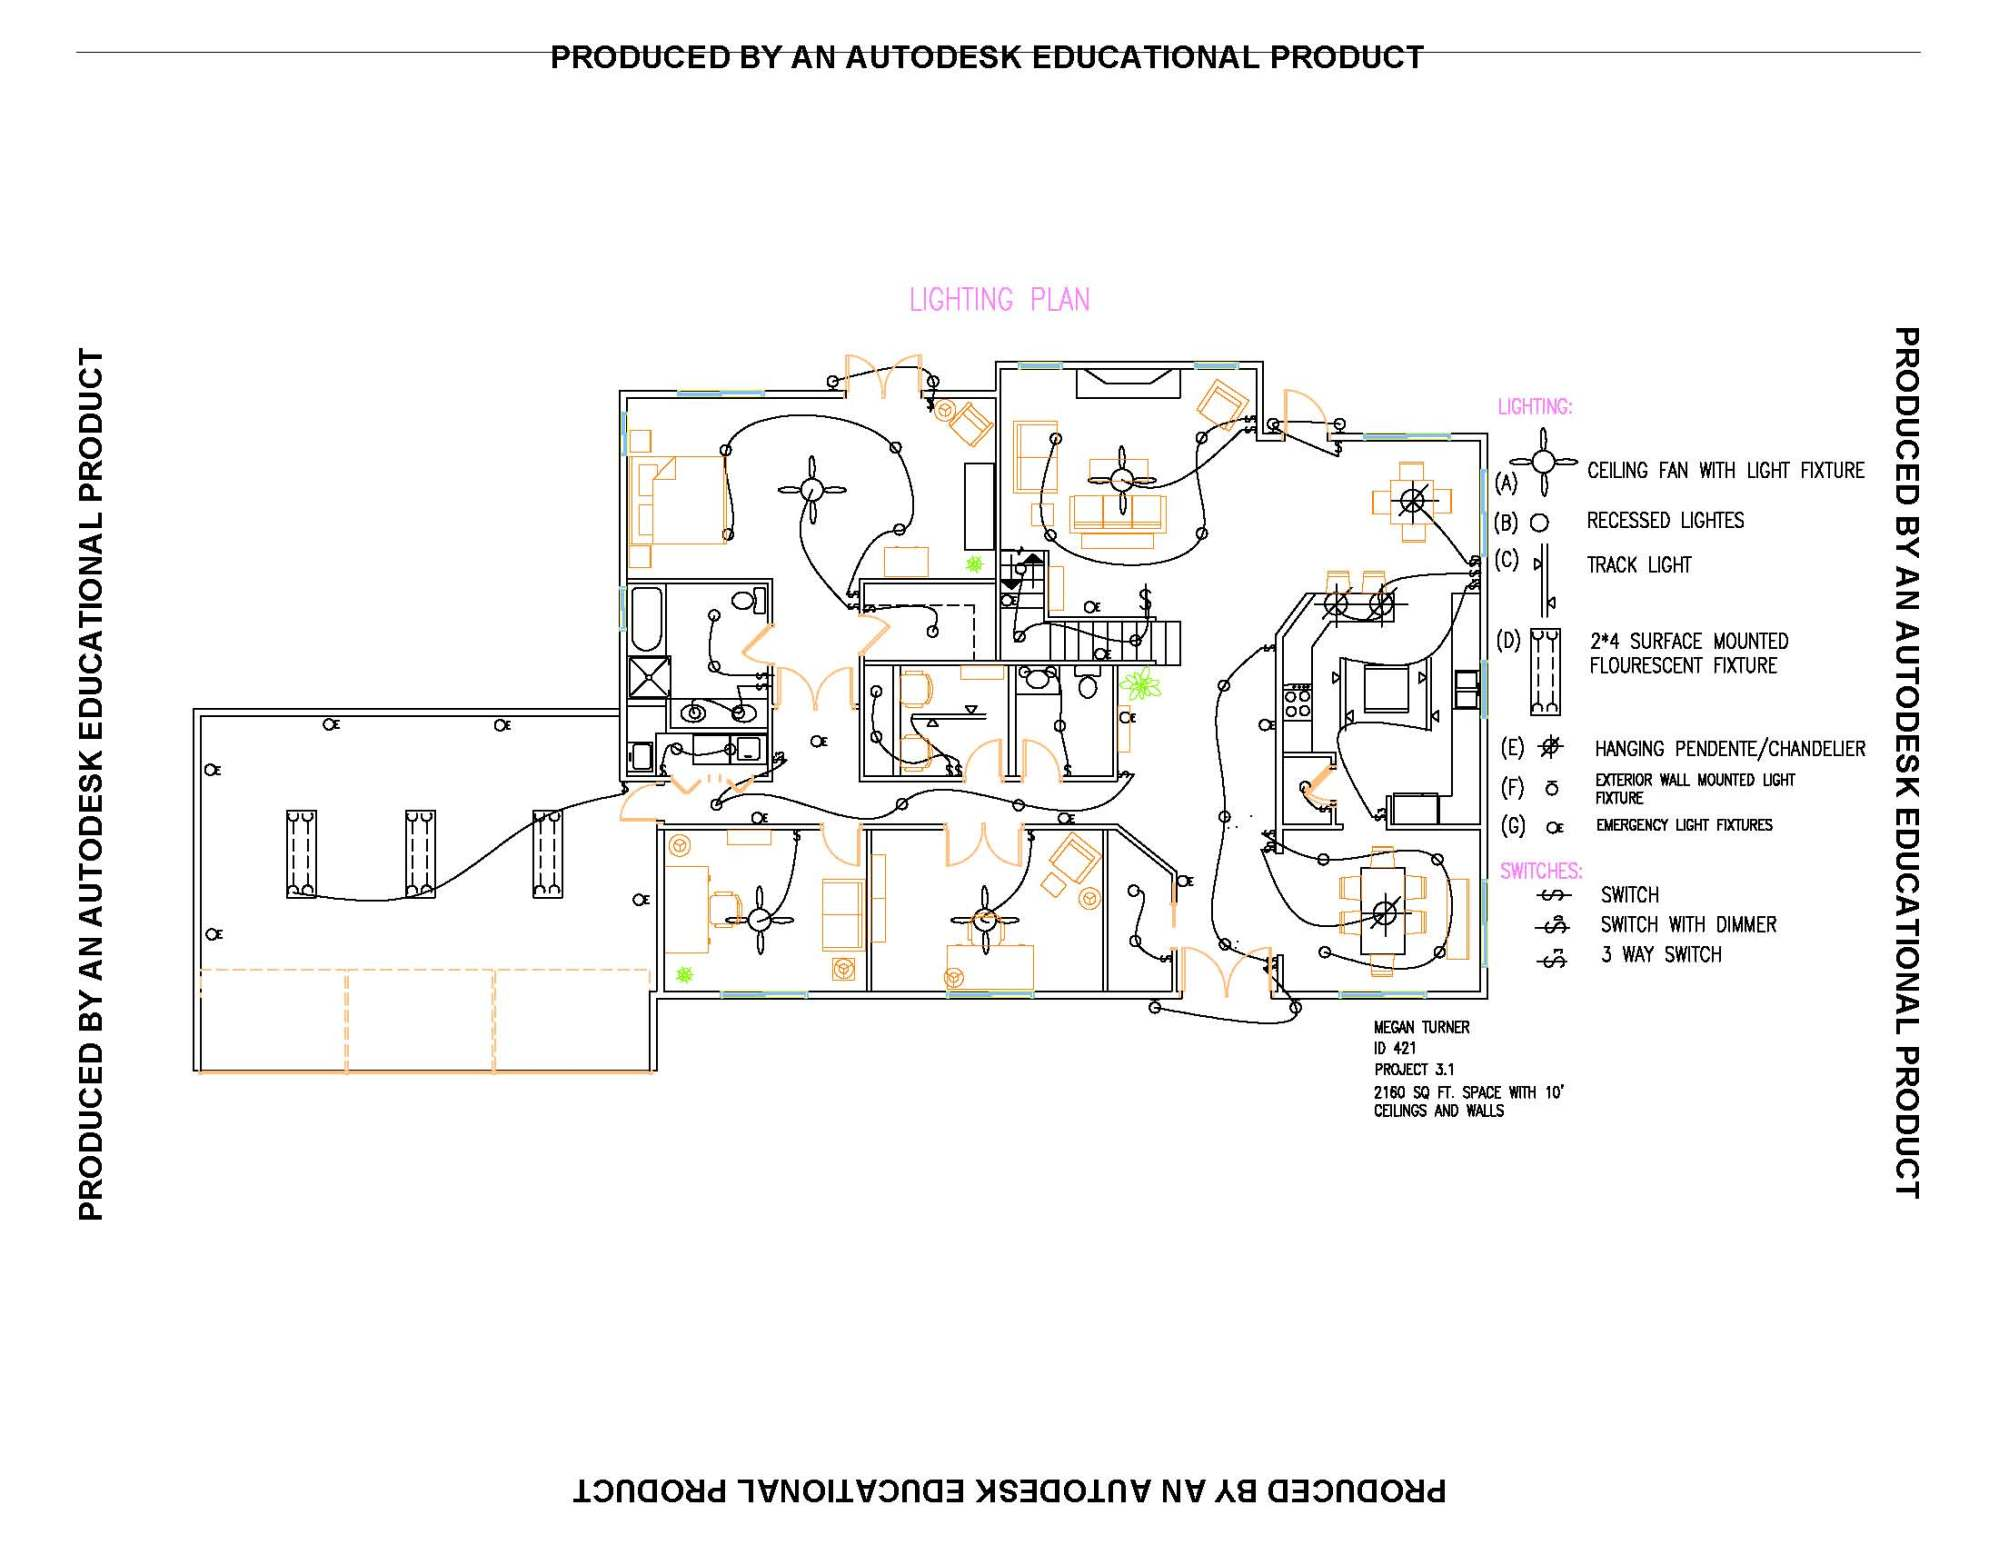 hight resolution of electrical plan sketchup wiring diagram centreelectrical plan sketchup wiring diagram ebookelectrical plan google sketchup wiring diagramelectrical